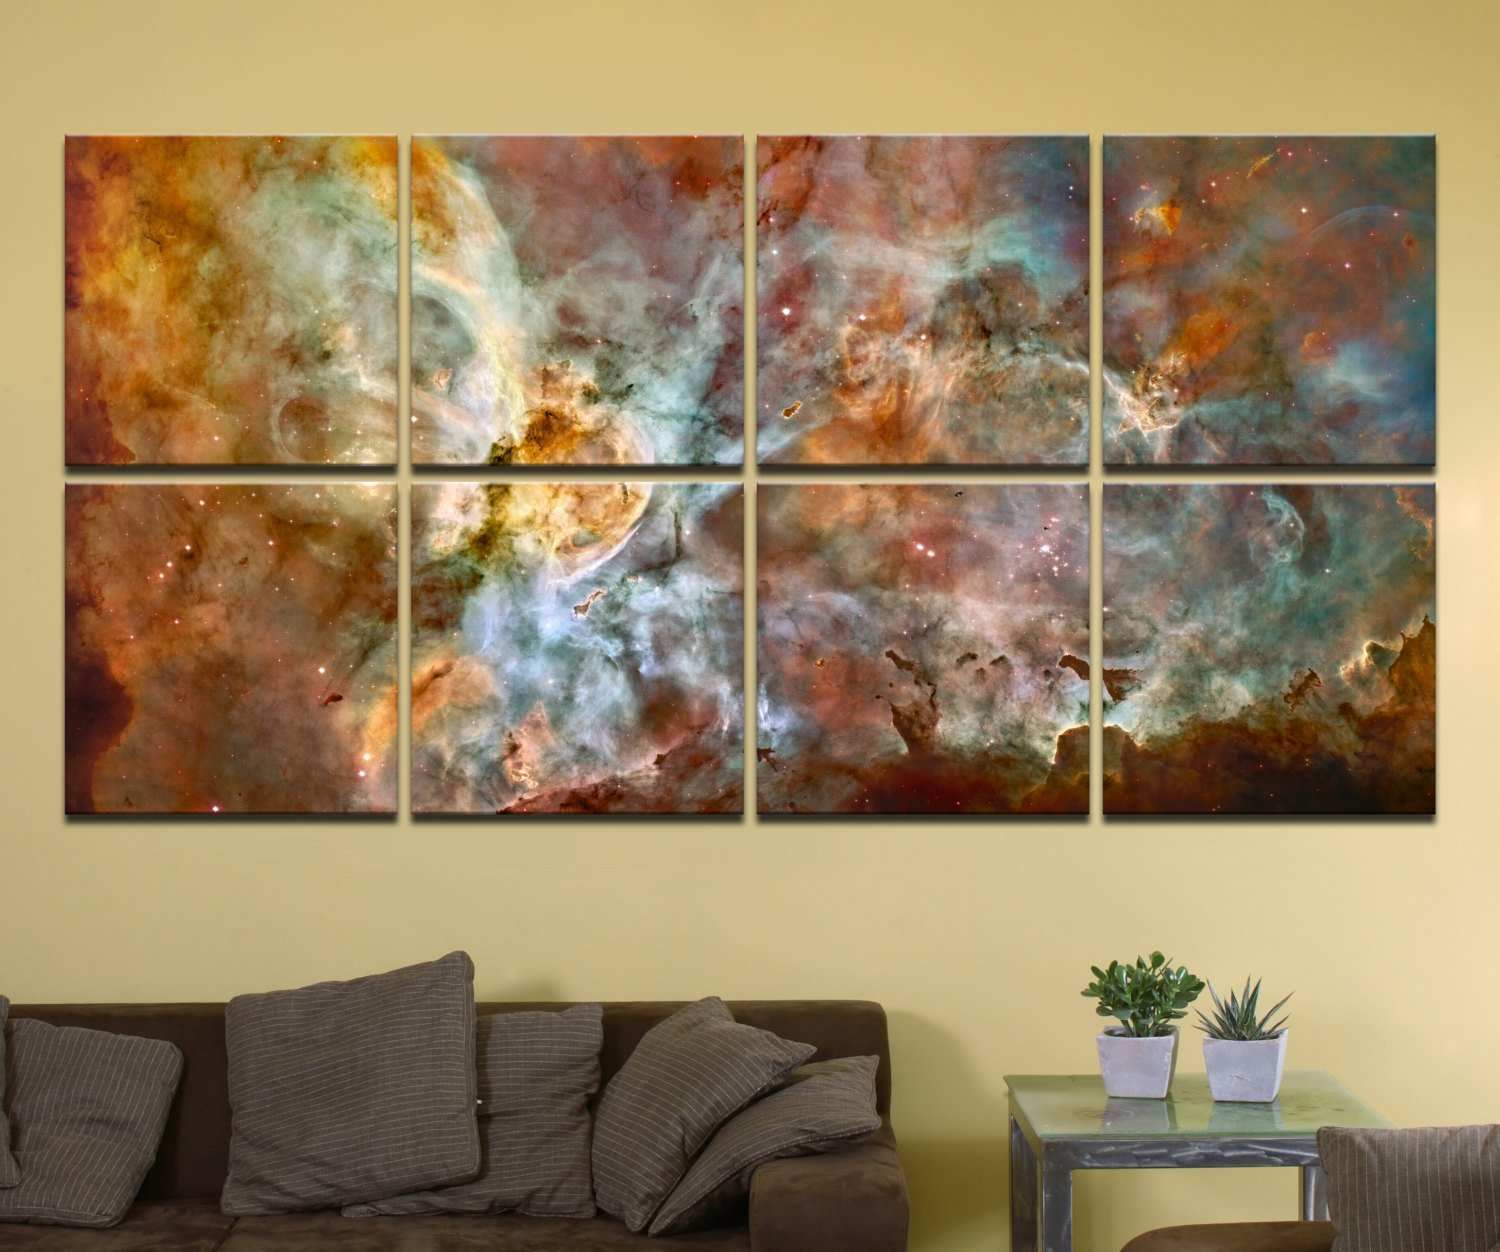 The Carina Nebula, Star Birth in the Extreme (Color) – 80″ x 40″, GIANT 8-Piece Canvas Wall Mural